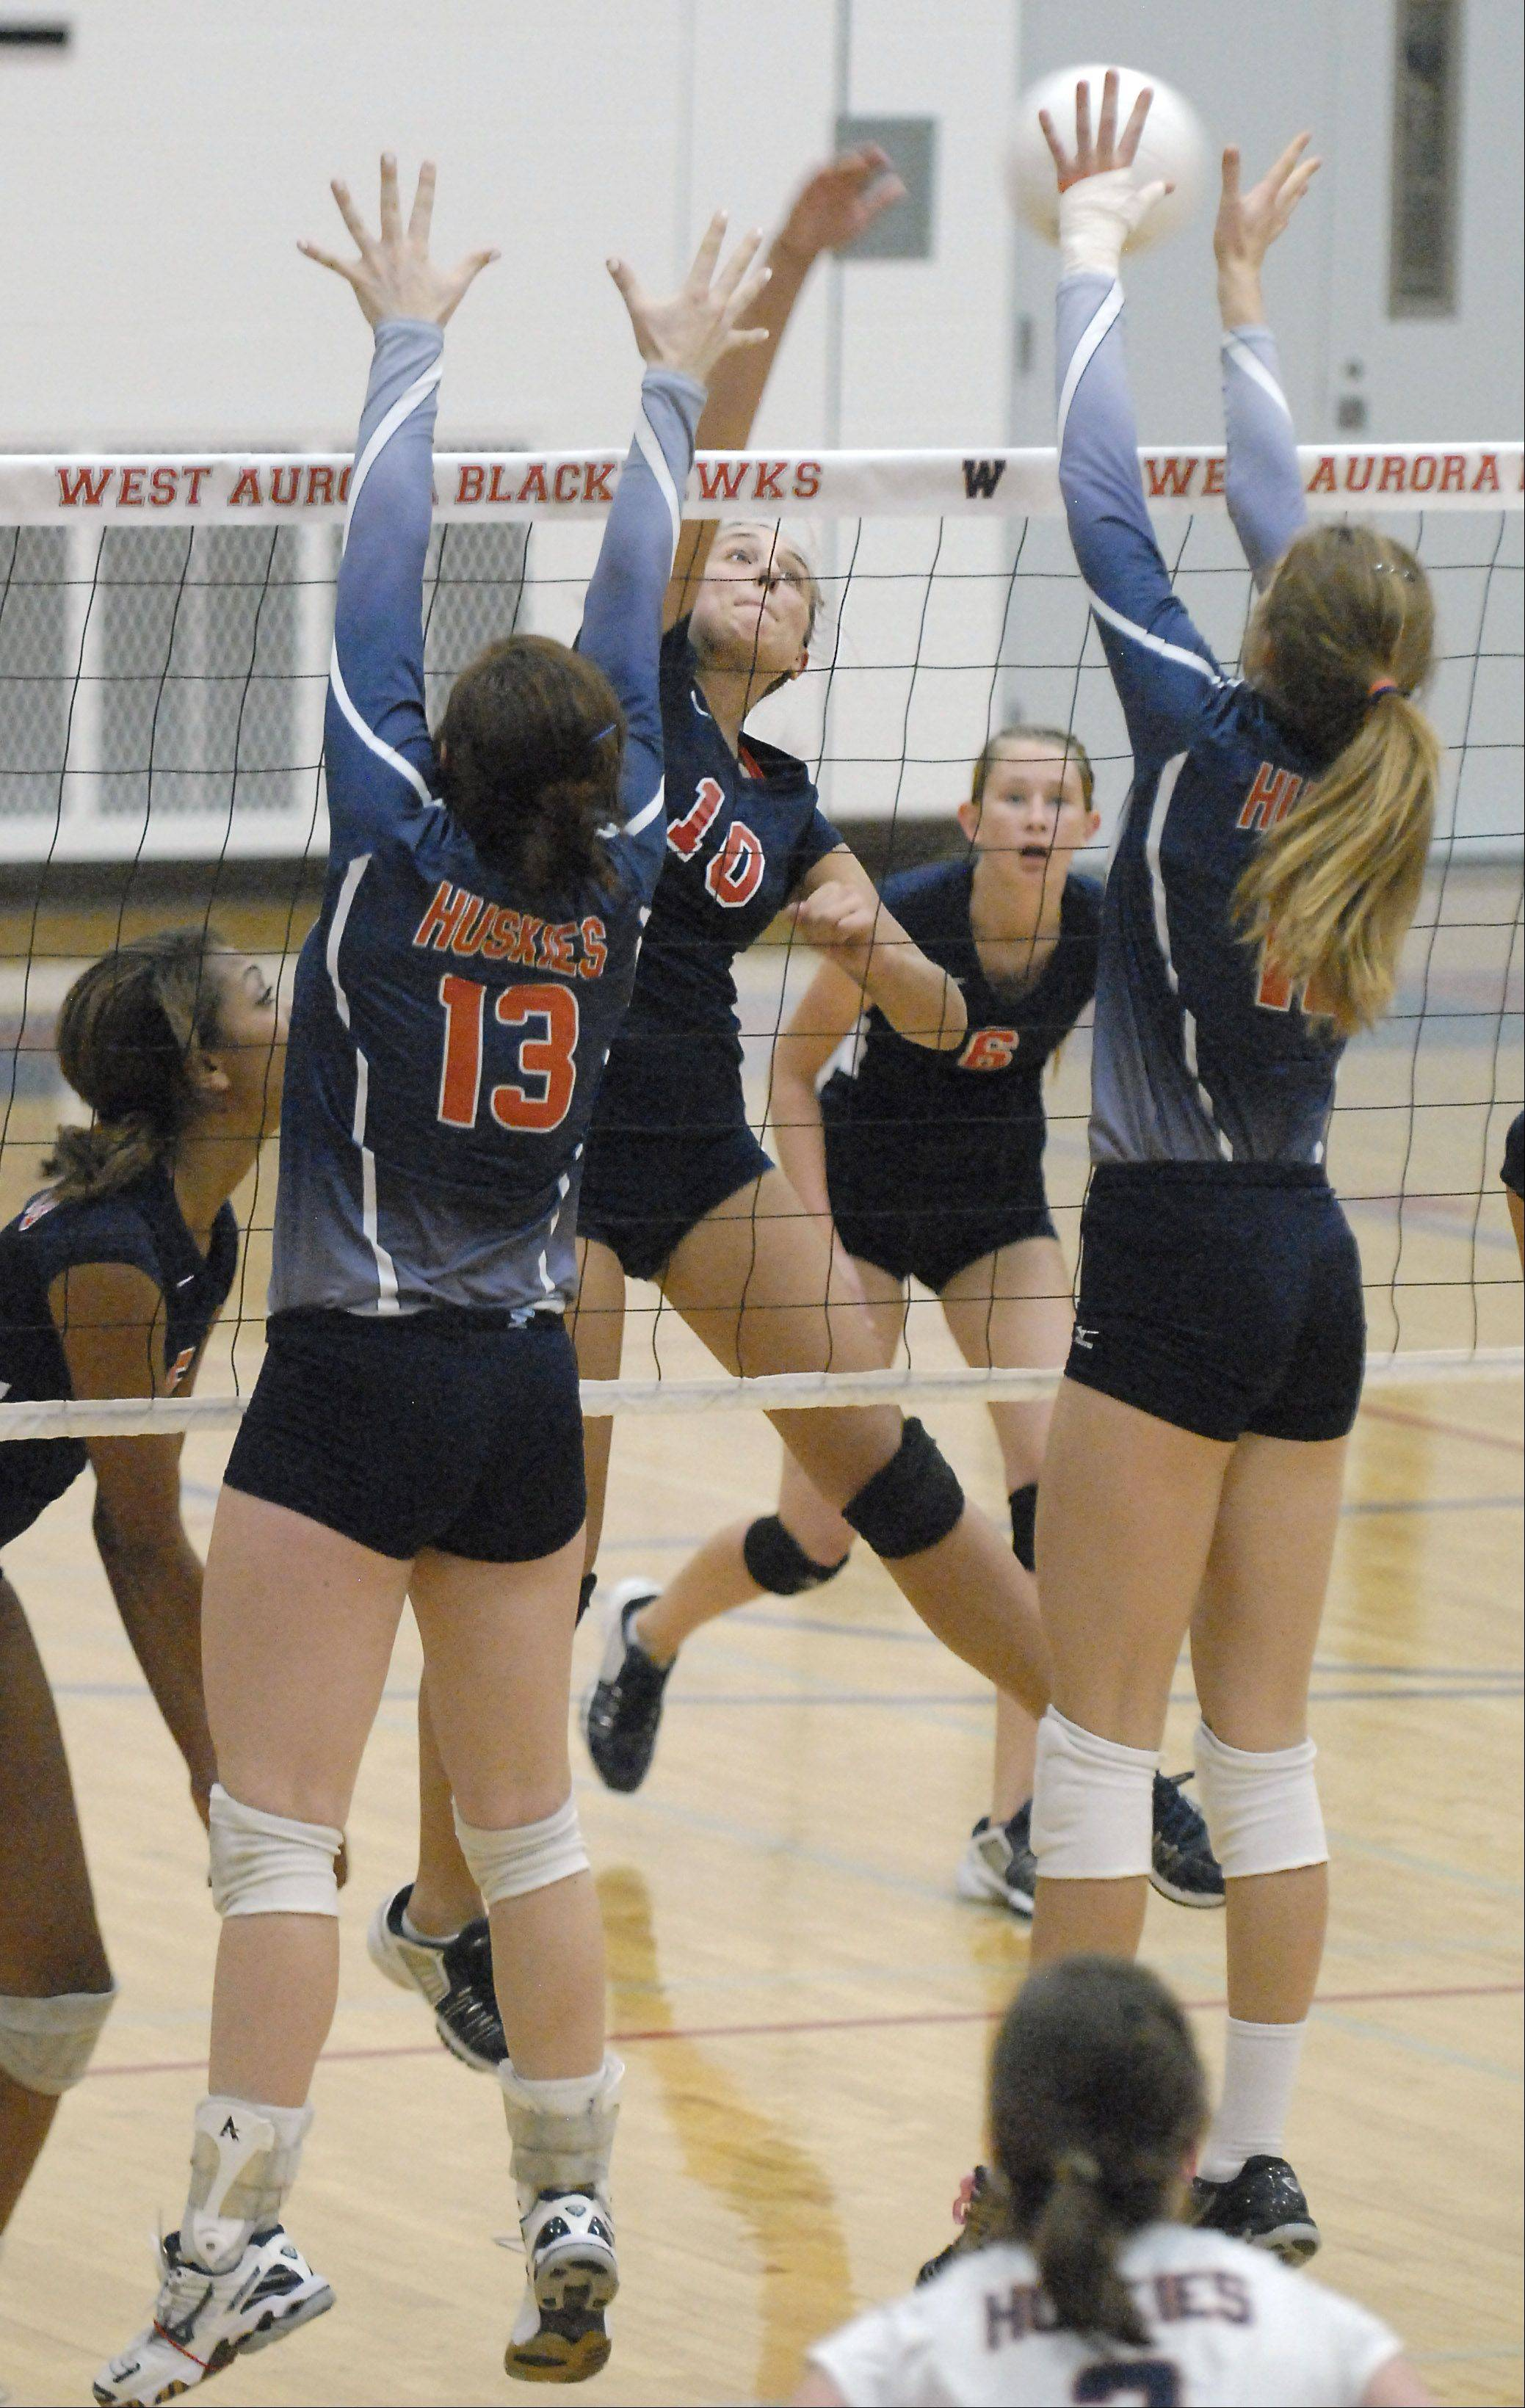 West Aurora's Kaitlyn Richter spikes the ball over the net toward Naperville North's Corinne Gajcak, left and Becky Welch, right, in the second game on Thursday, October 11.